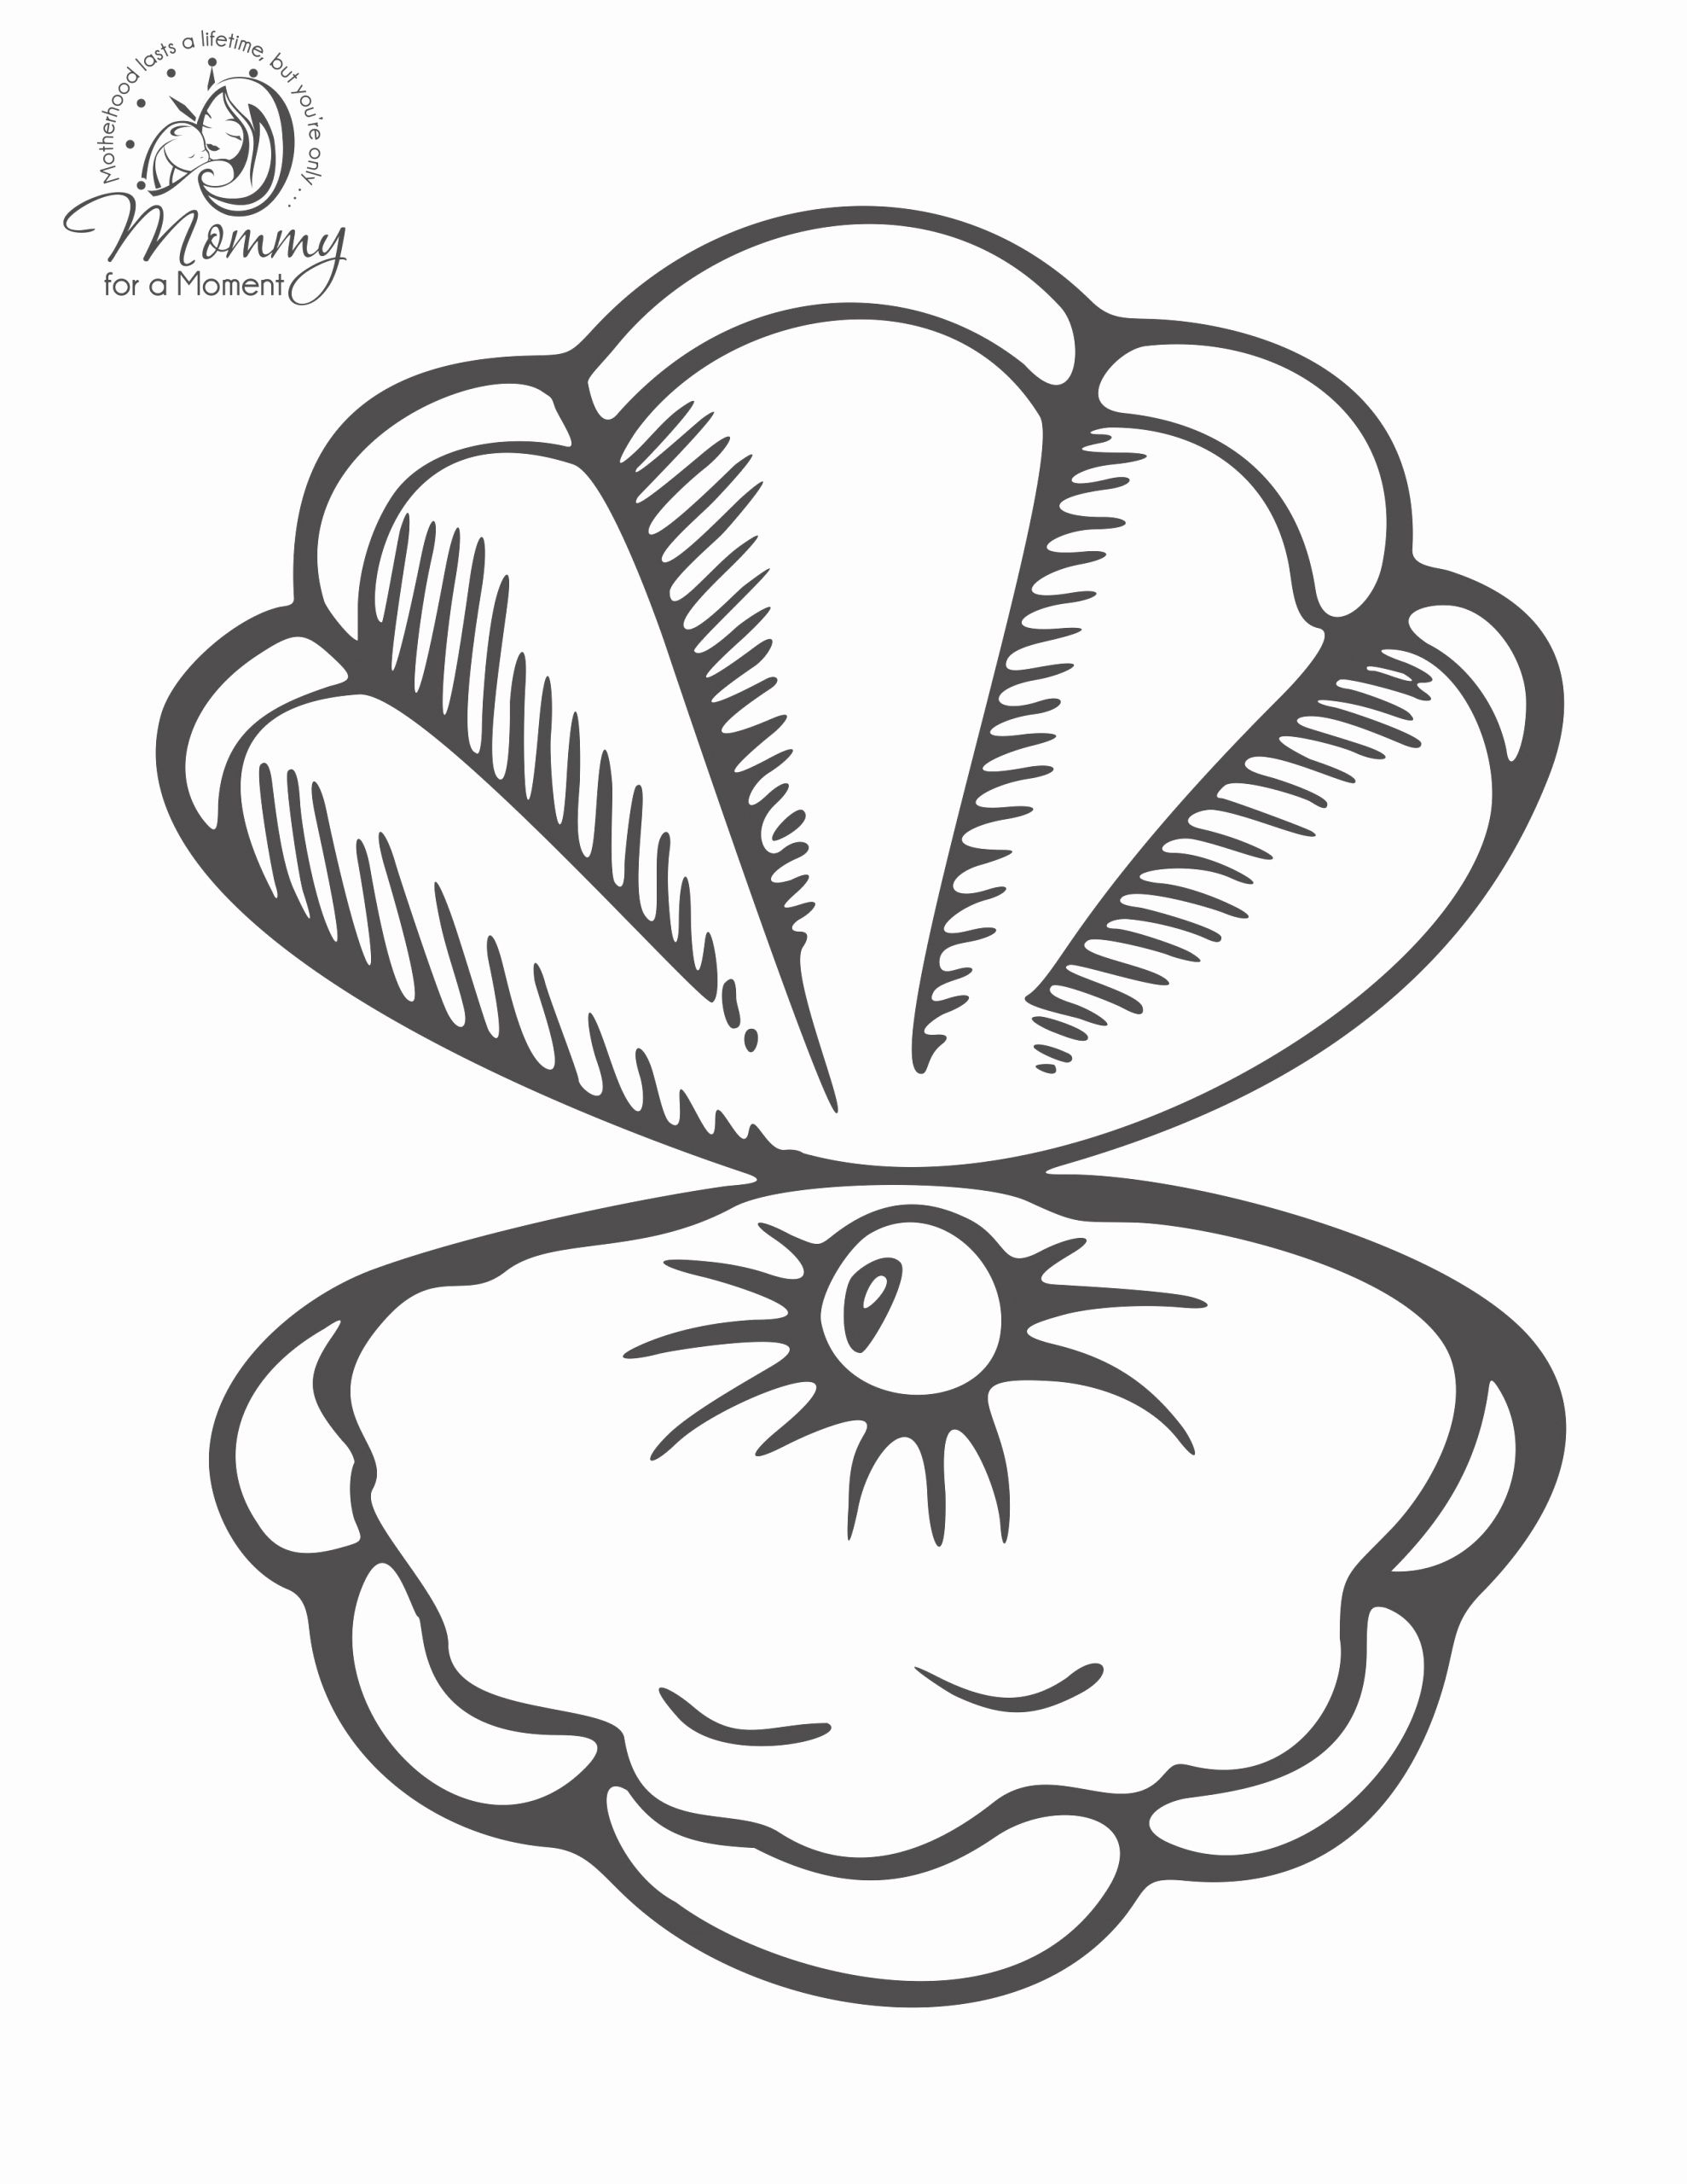 Sea Animal Coloring Page New Coloring Pages Phenomenal Seashell Coloring Page Image In 2020 Animal Coloring Pages Spring Coloring Pages Coloring Pages